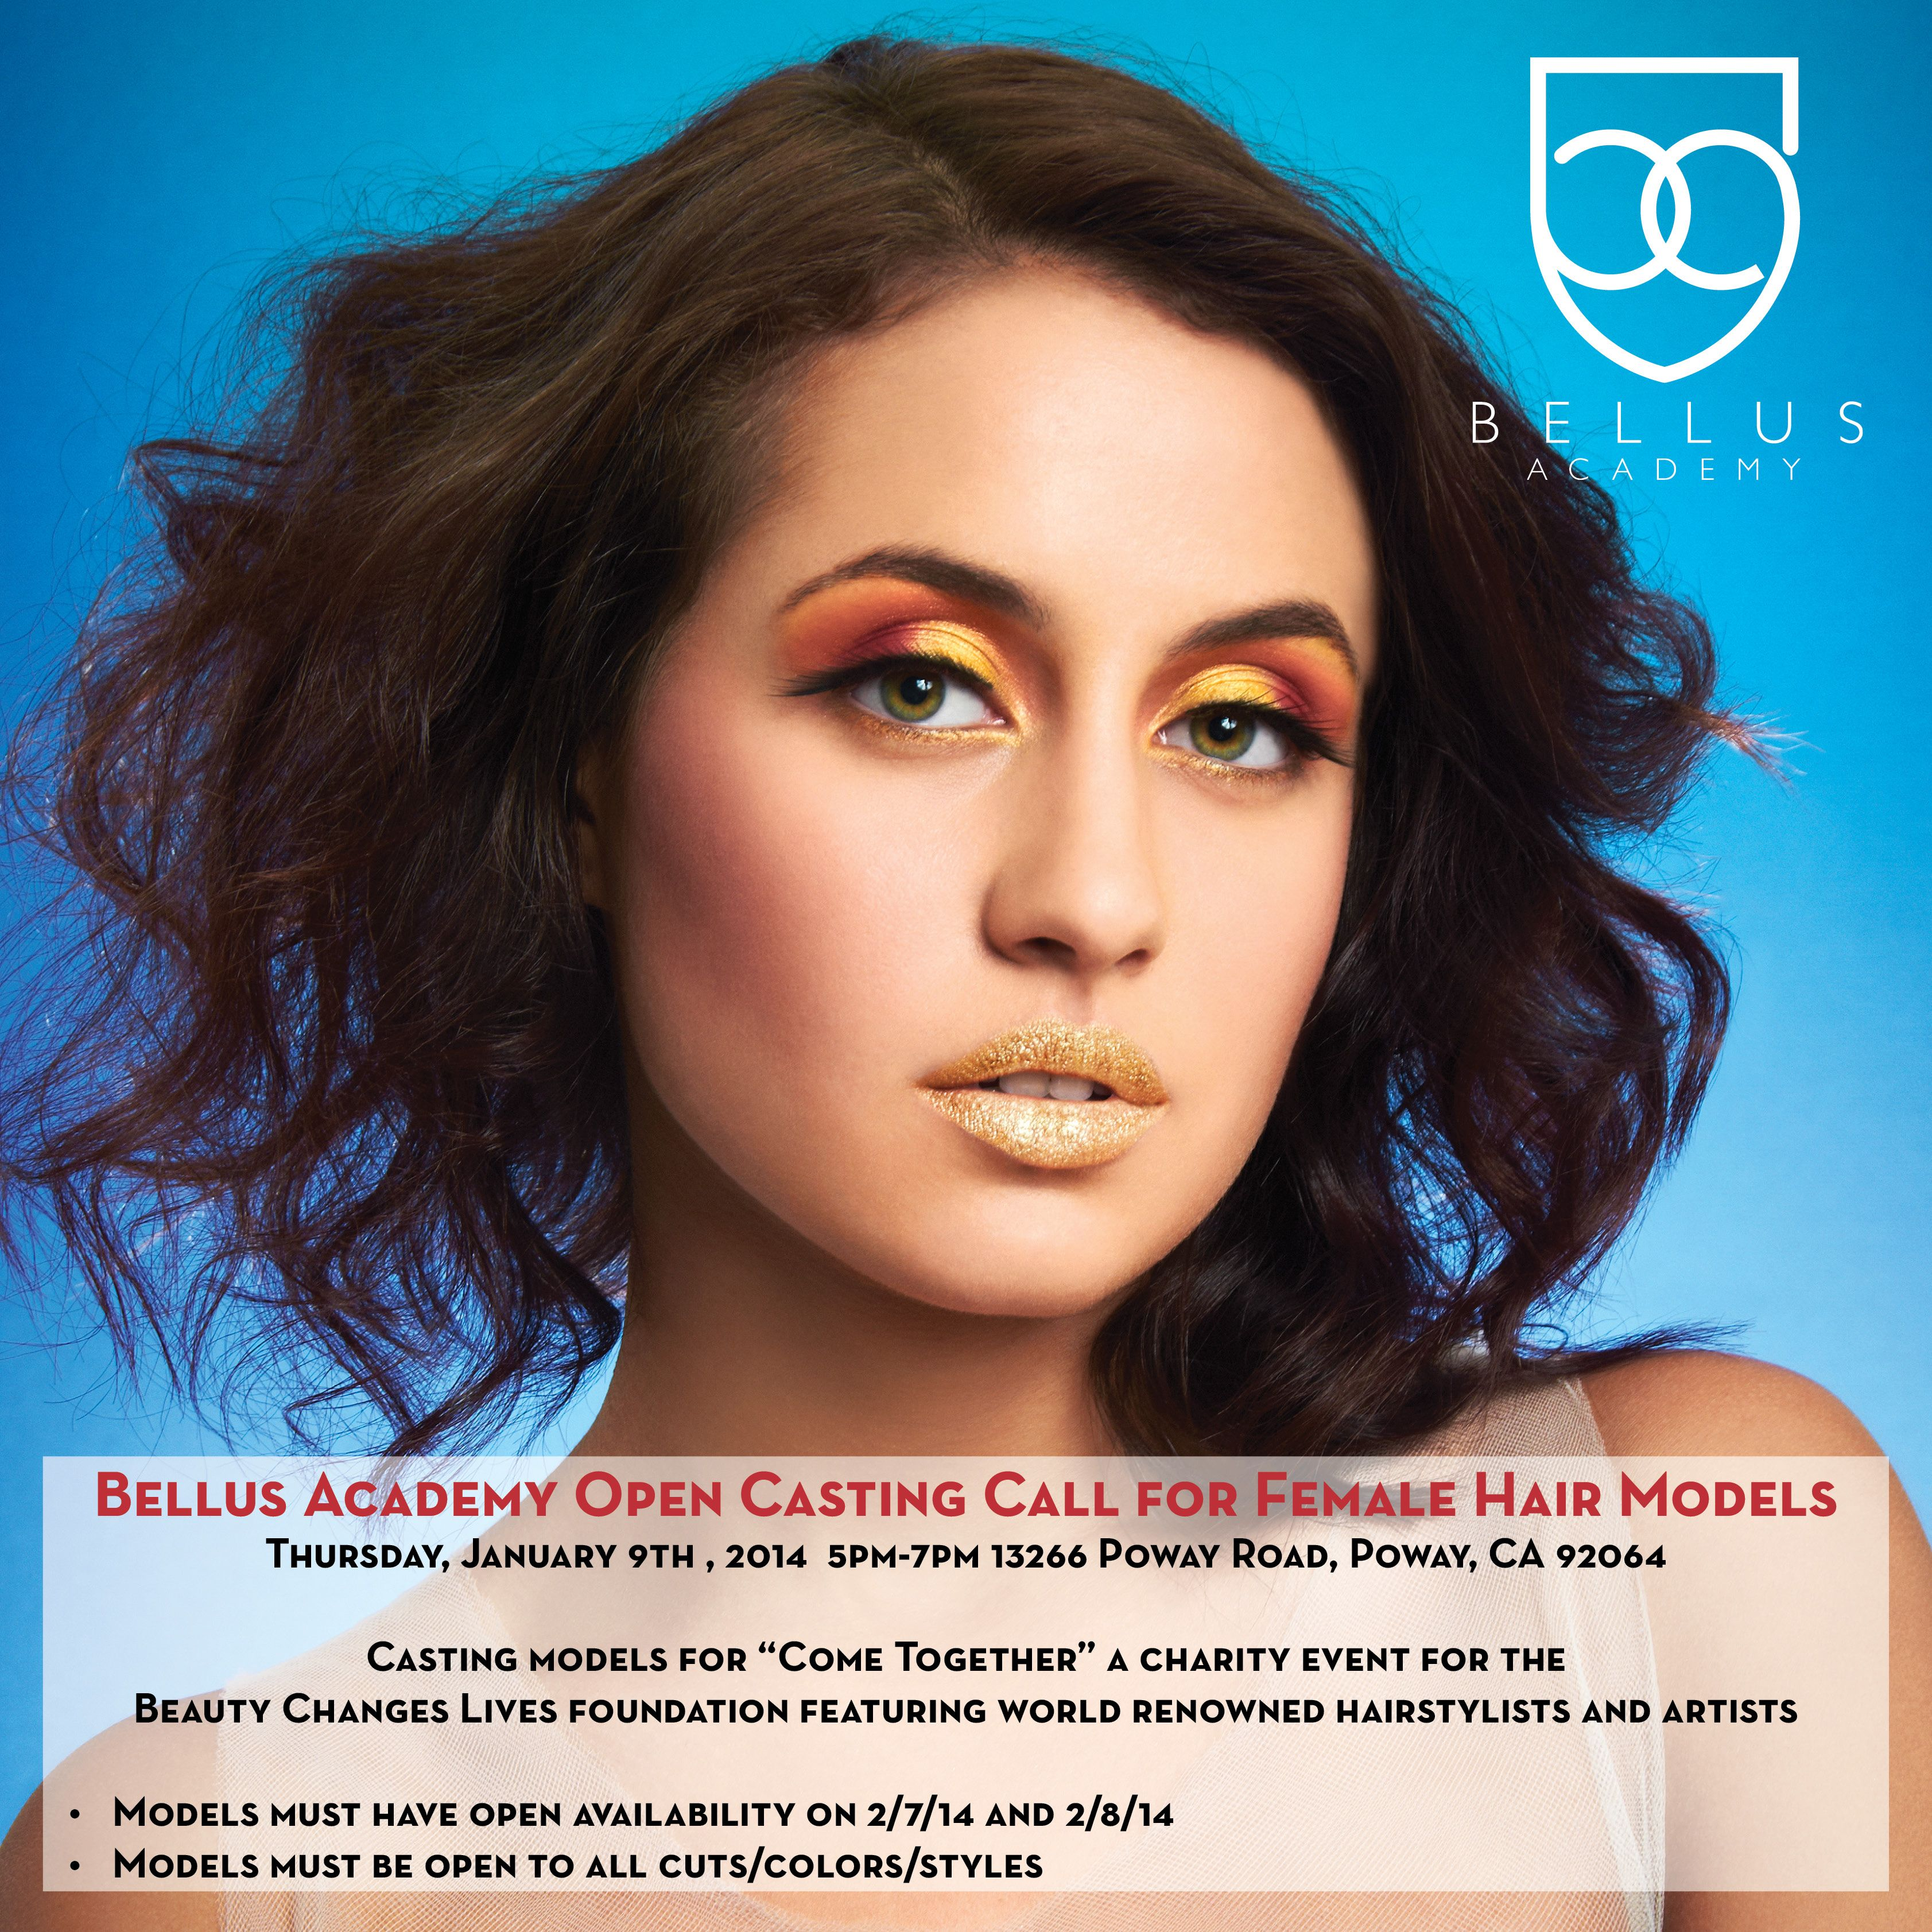 Hair Models Wanted! Bellus Academy Open Casting Call for ...